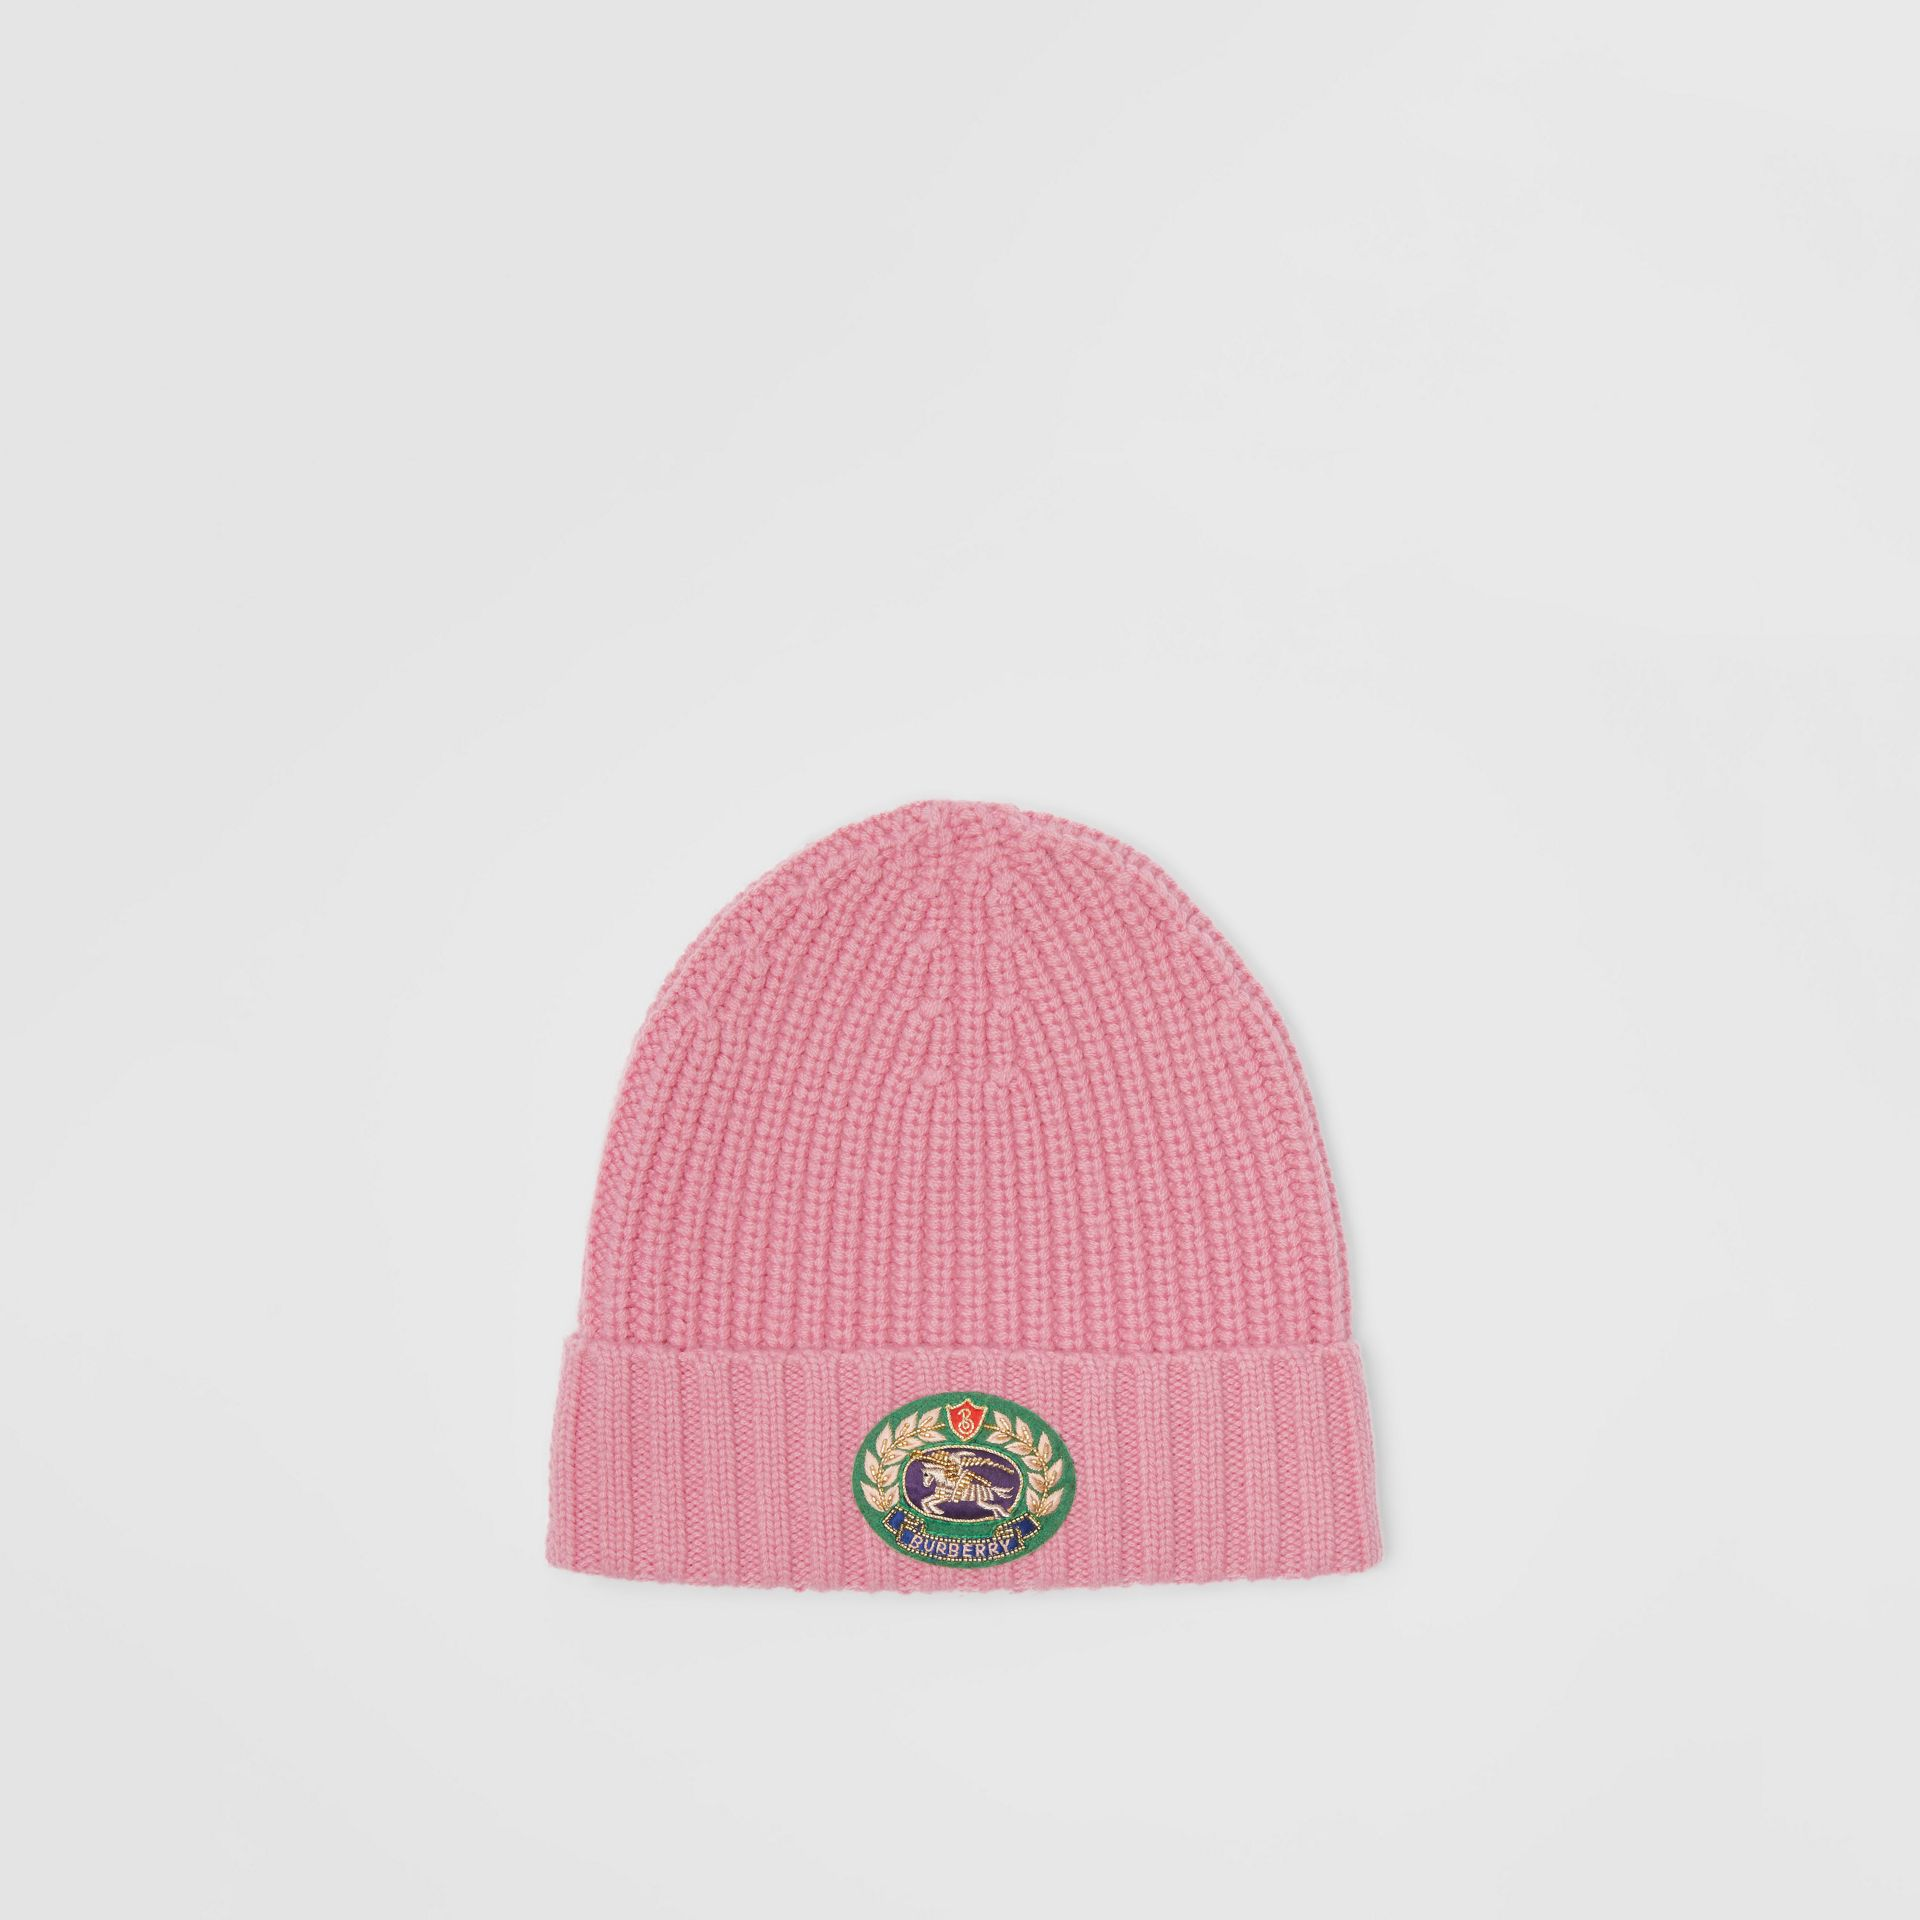 Embroidered Crest Rib Knit Wool Cashmere Beanie in Rose Pink | Burberry United States - gallery image 0